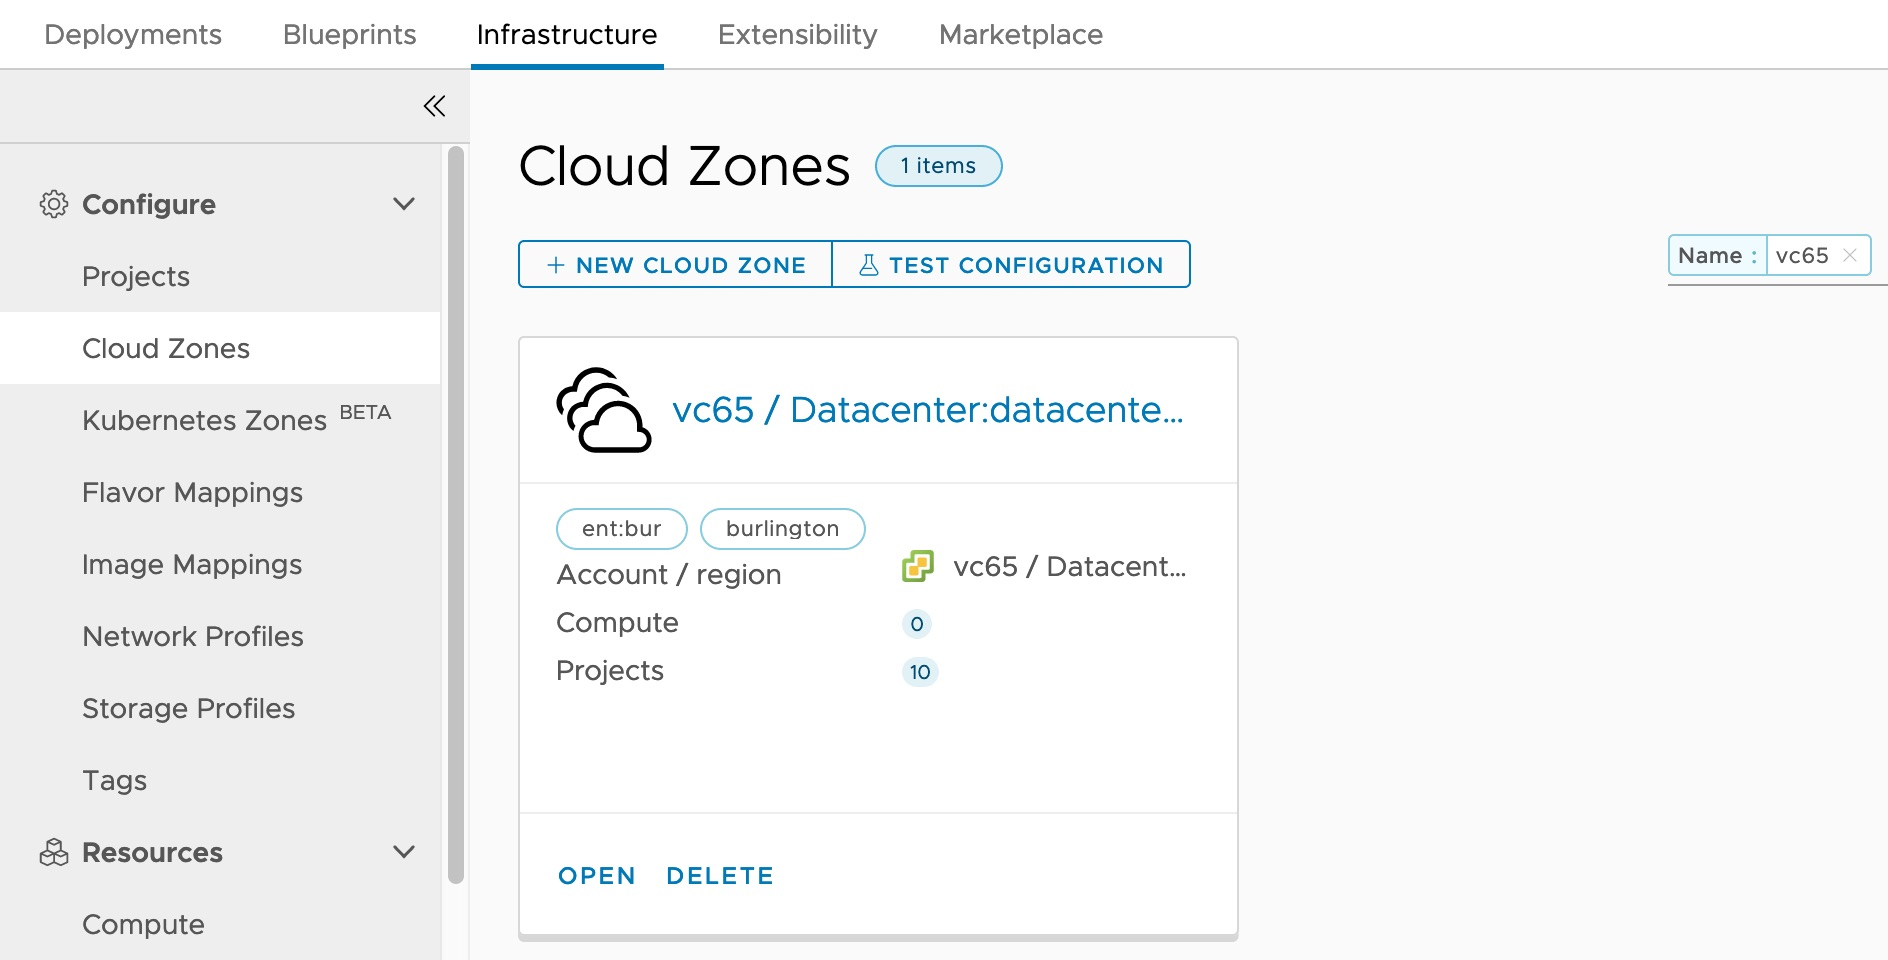 Cloud Zone for vCenter Datacenter